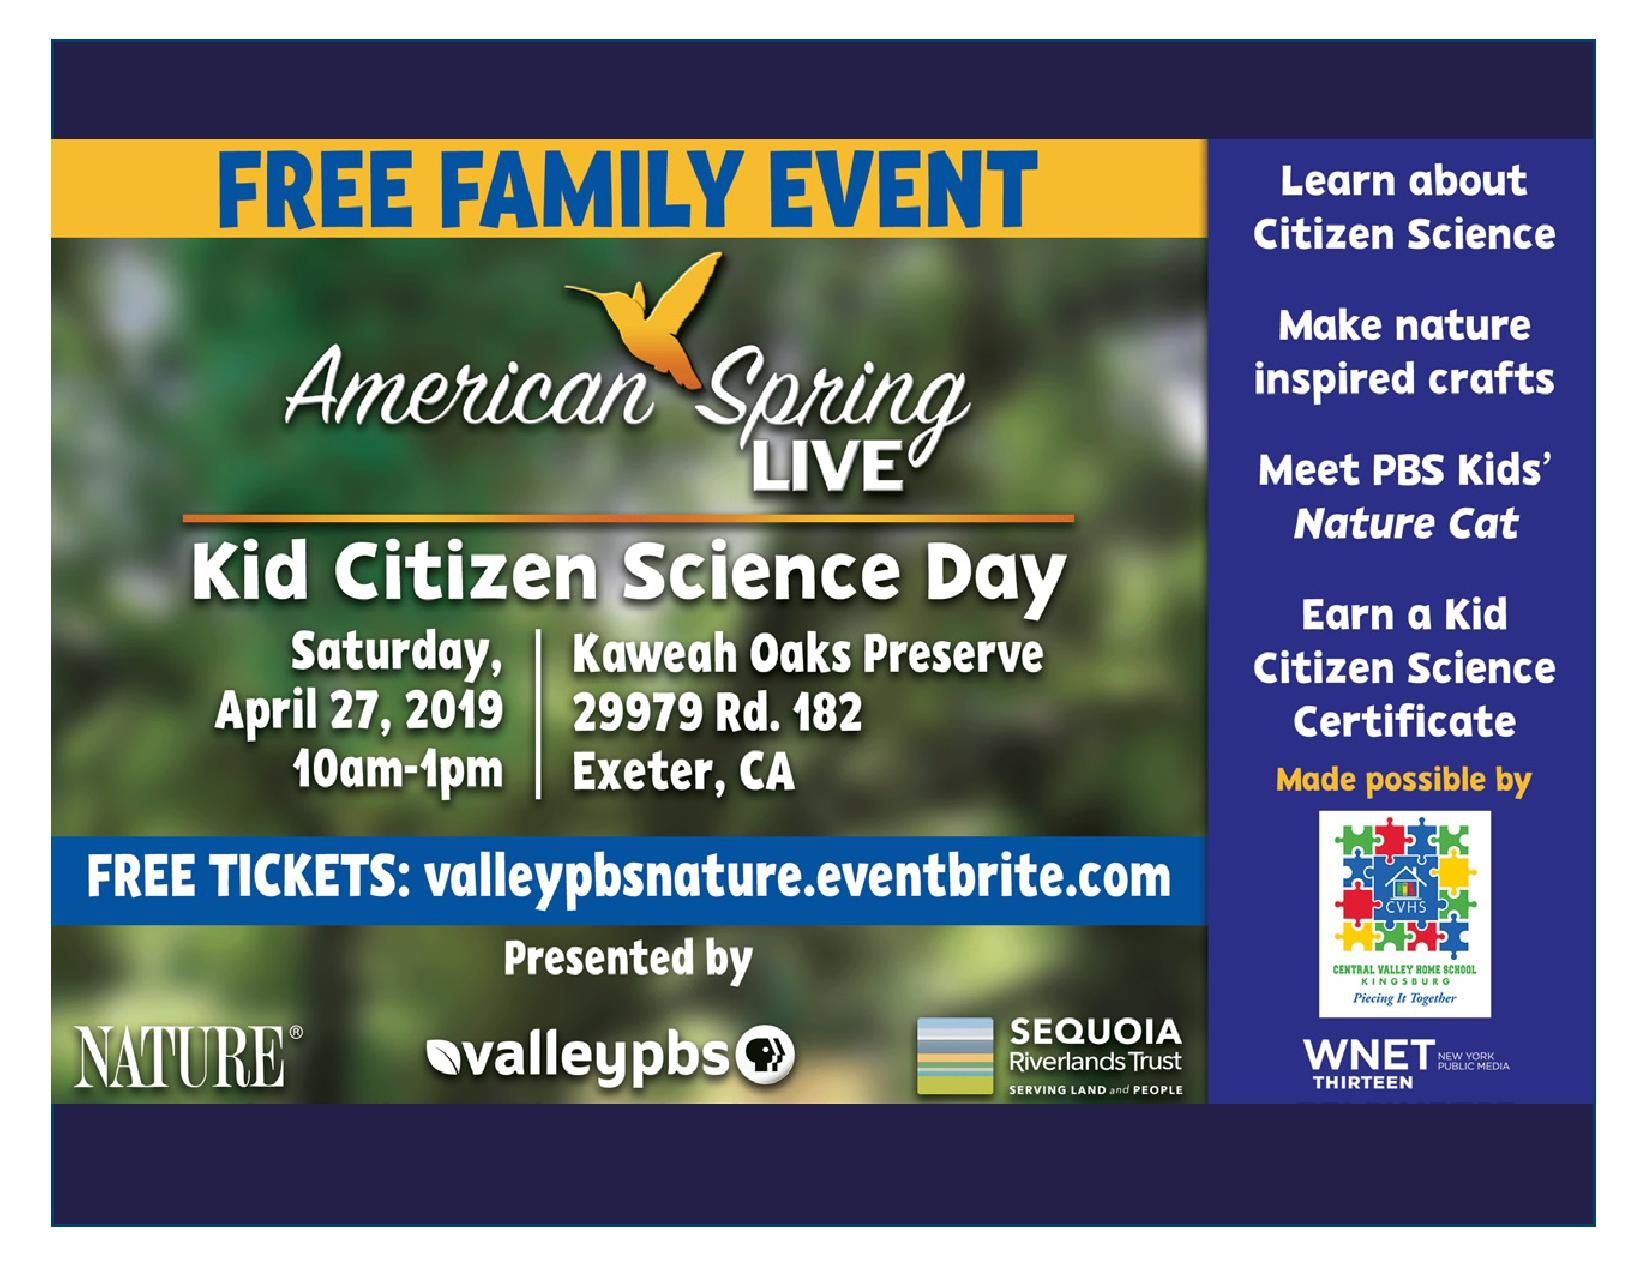 PBS comes to Kaweah Oaks for Kids' Citizen Science fun!